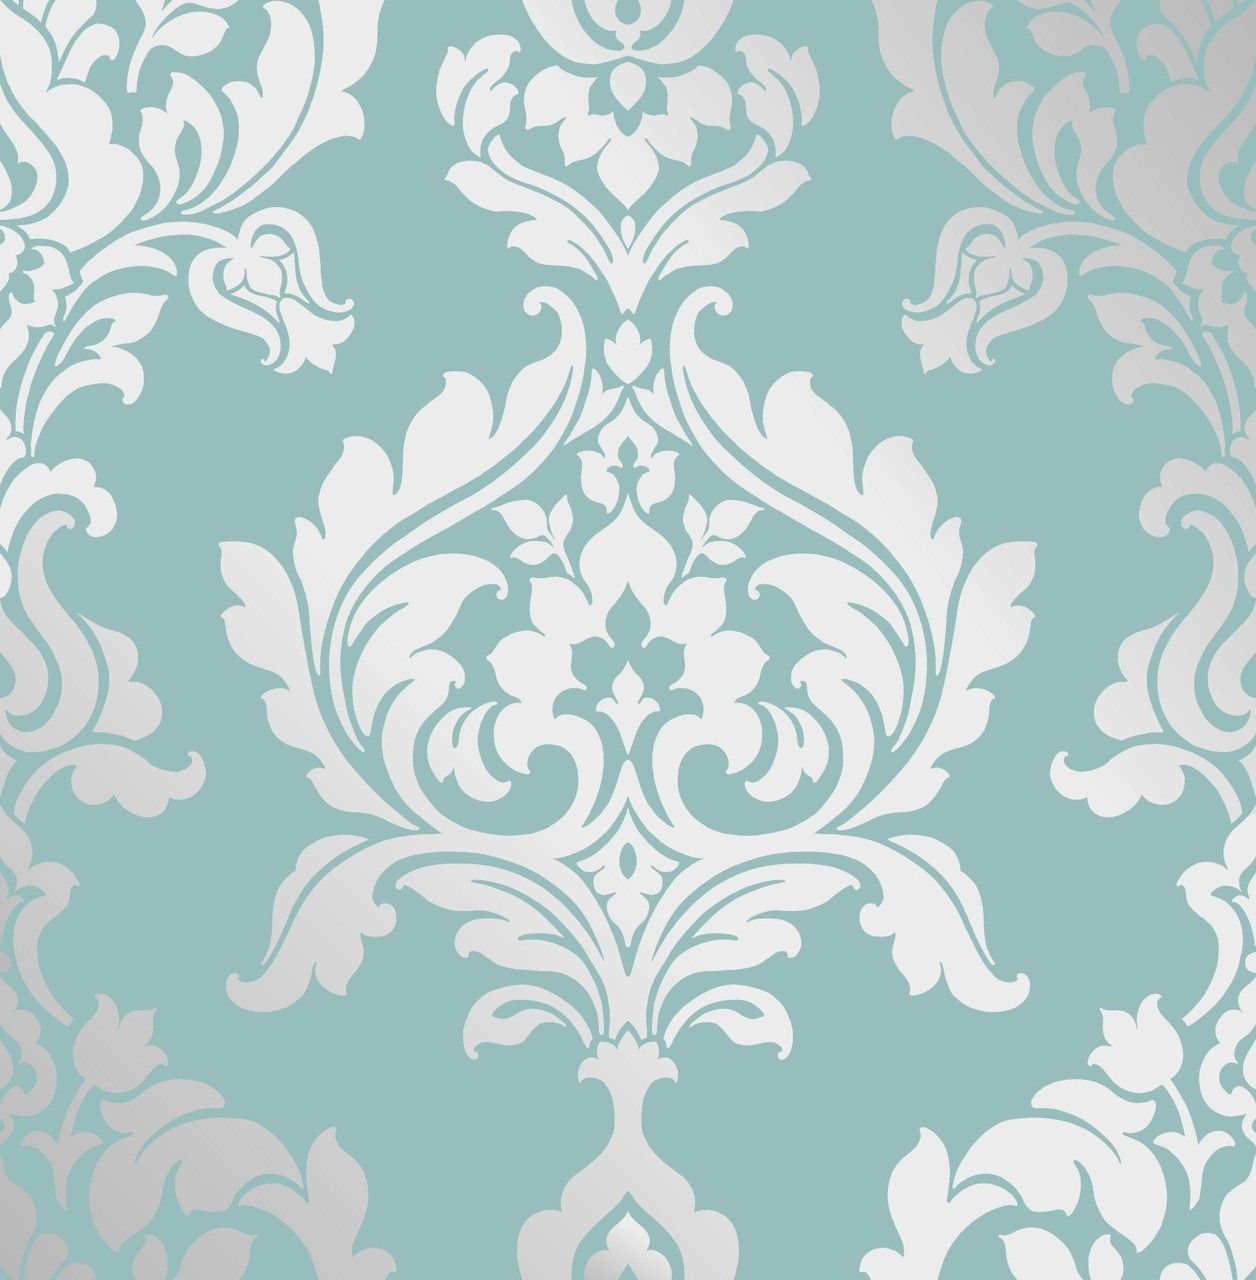 Decorline Foils Soft Teal Modern Traditional Paste the Wall Duck Egg Foil  Silver Damask Wallpaper by Fine Decor Details and purchase options from  Lancashire ...